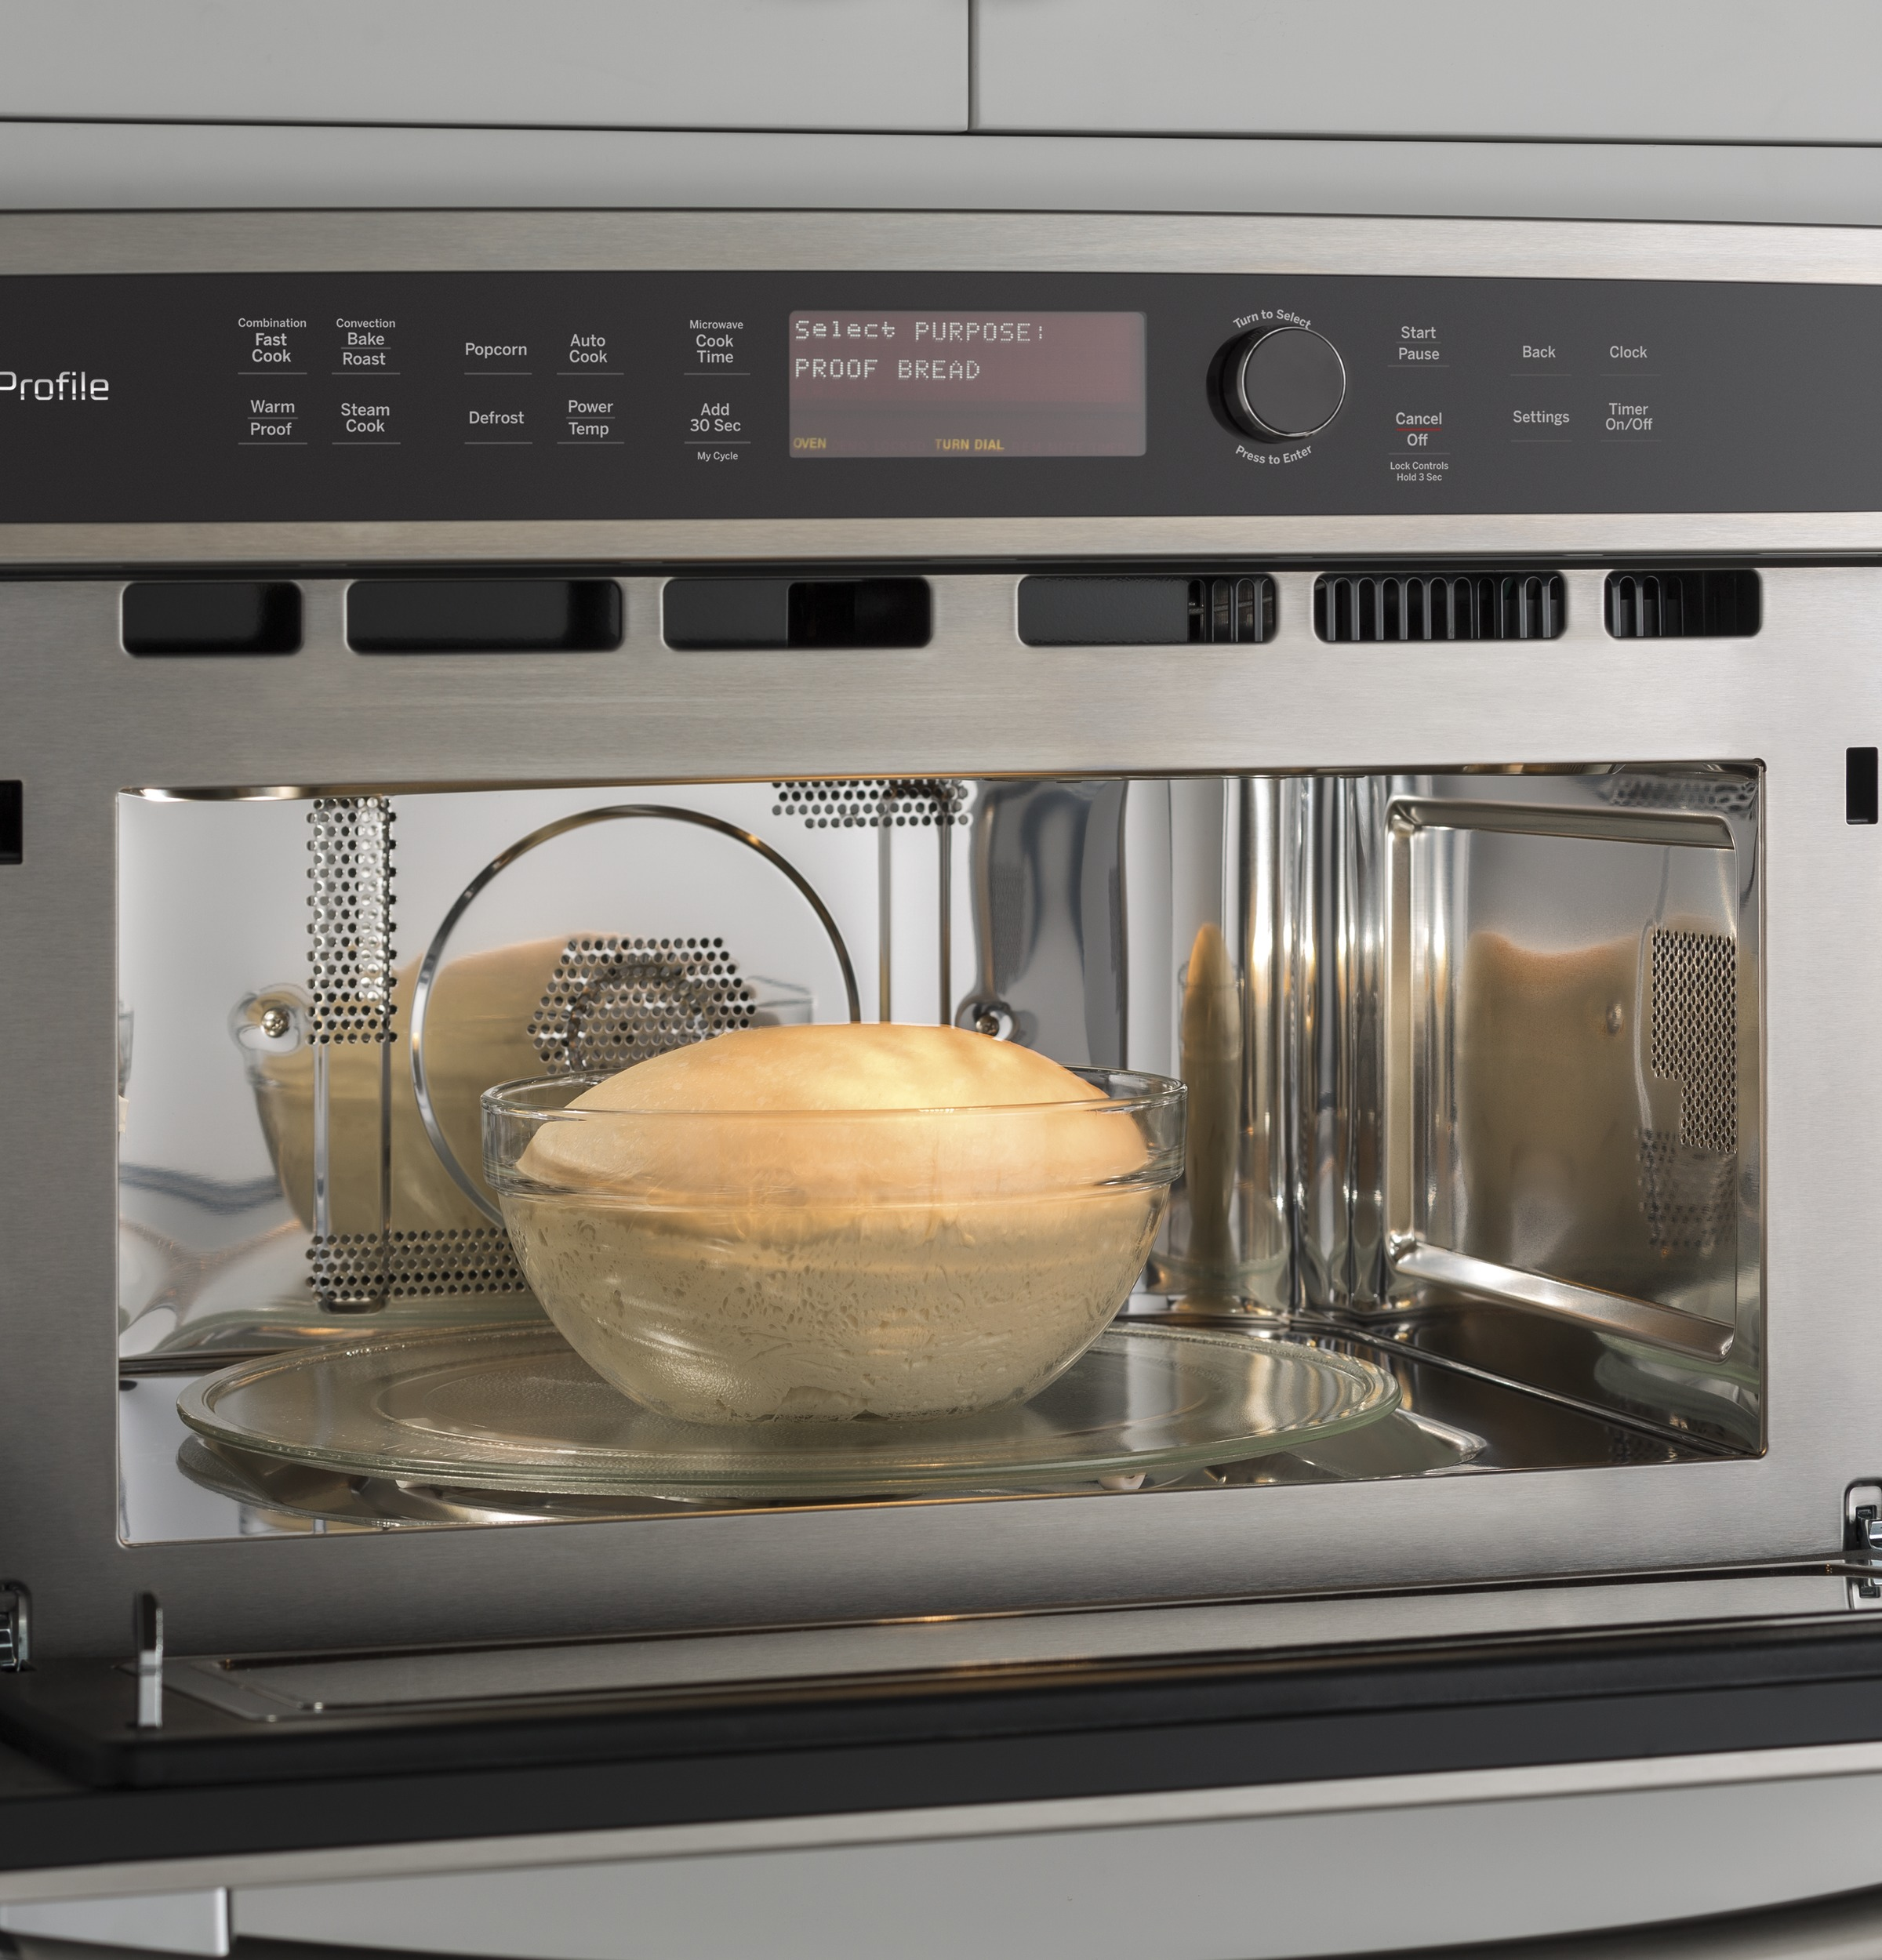 Model: PWB7030SLSS | GE Profile GE Profile™ Built-In Microwave/Convection Oven